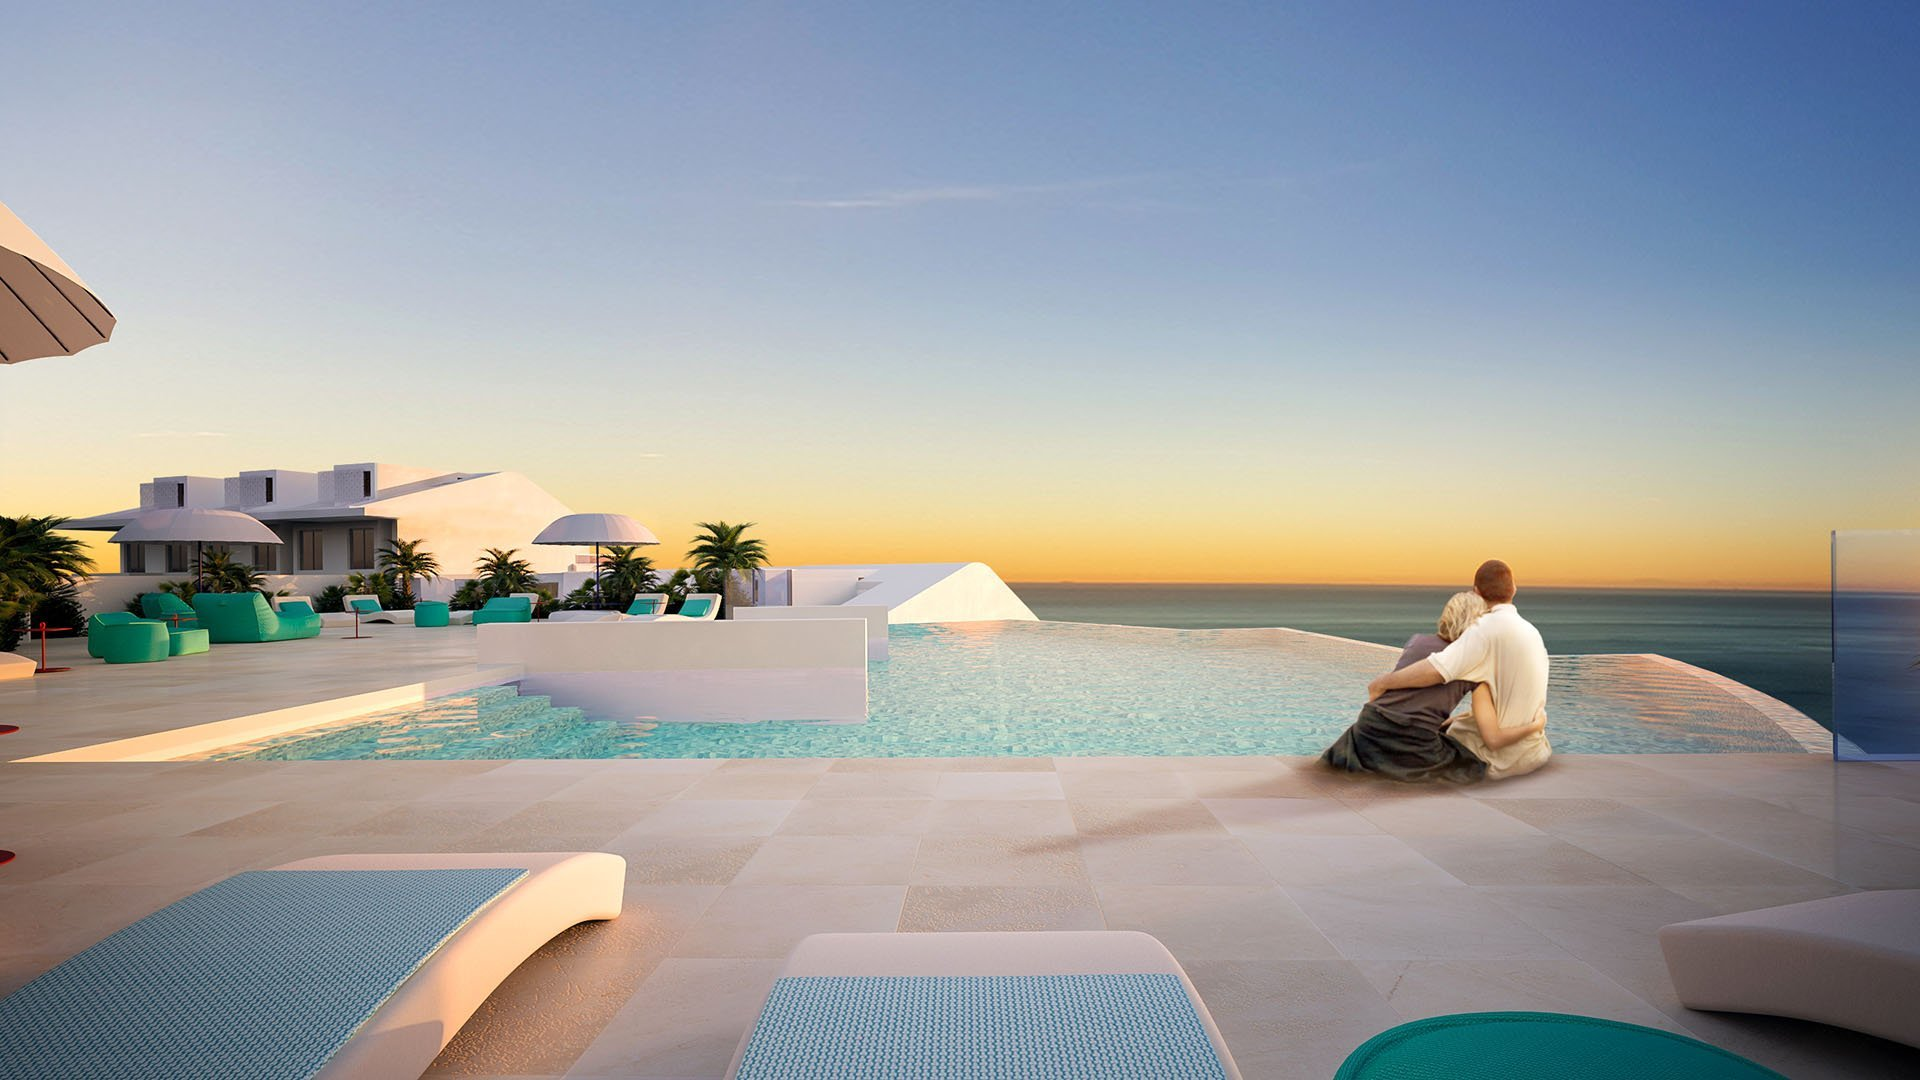 Stupa Hills: Apartments and penthouses with unforgettable views over the coast